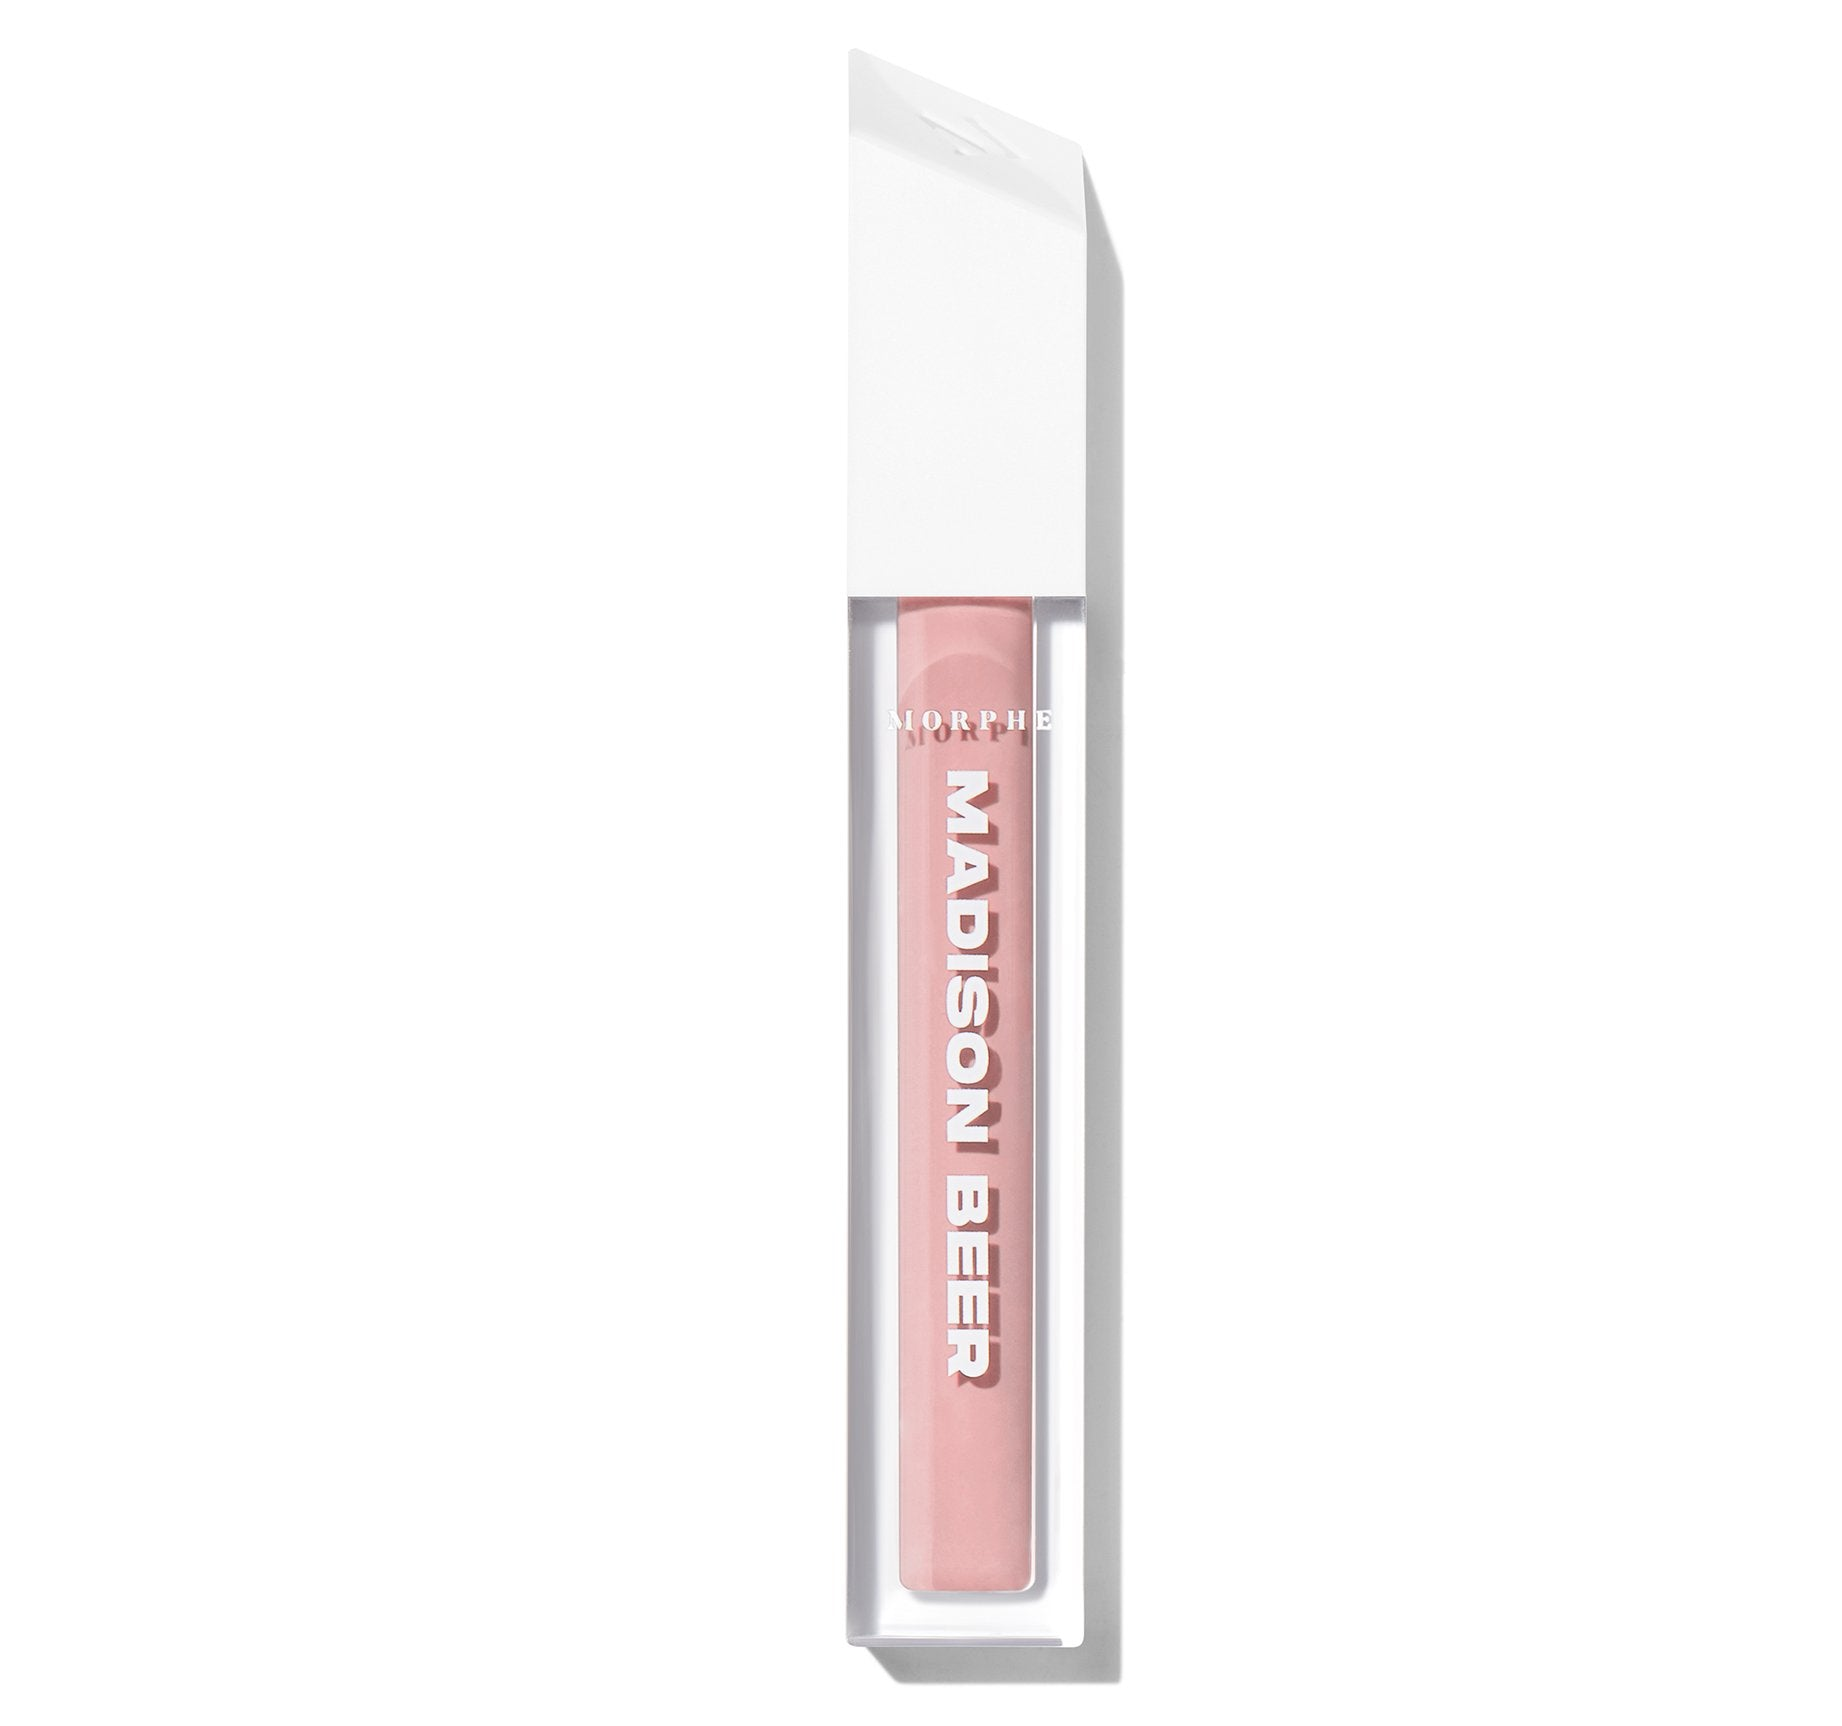 MADISON BEER LIP GLOSS - SATURN, view larger image